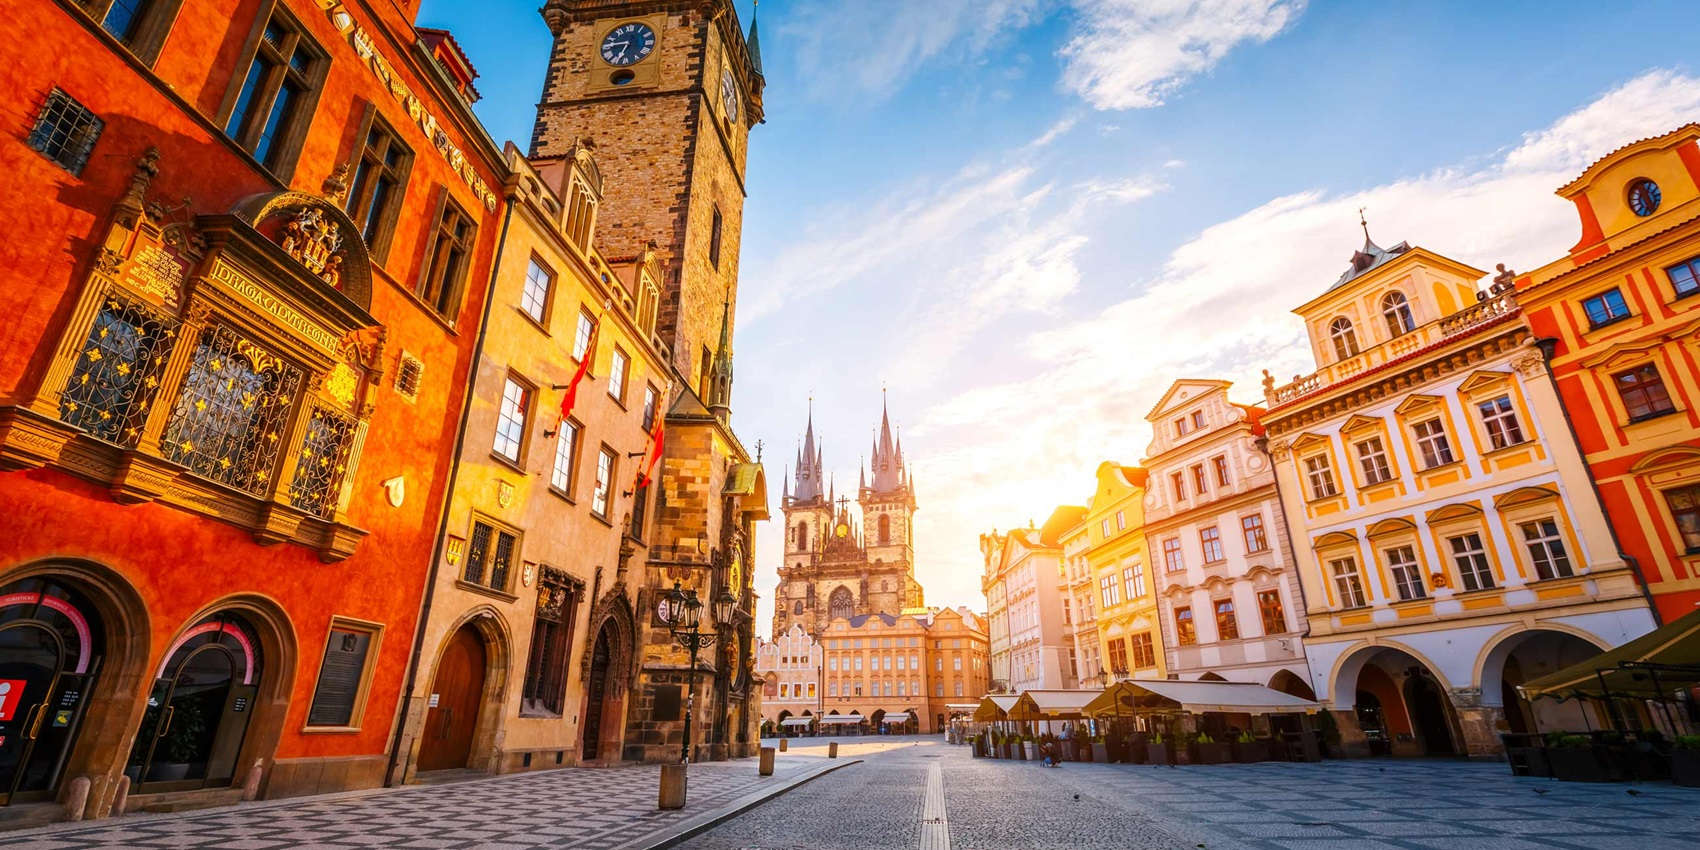 czechrepublic-prague-townhalltynchurch-665935732-ge-sept19-2600×1300